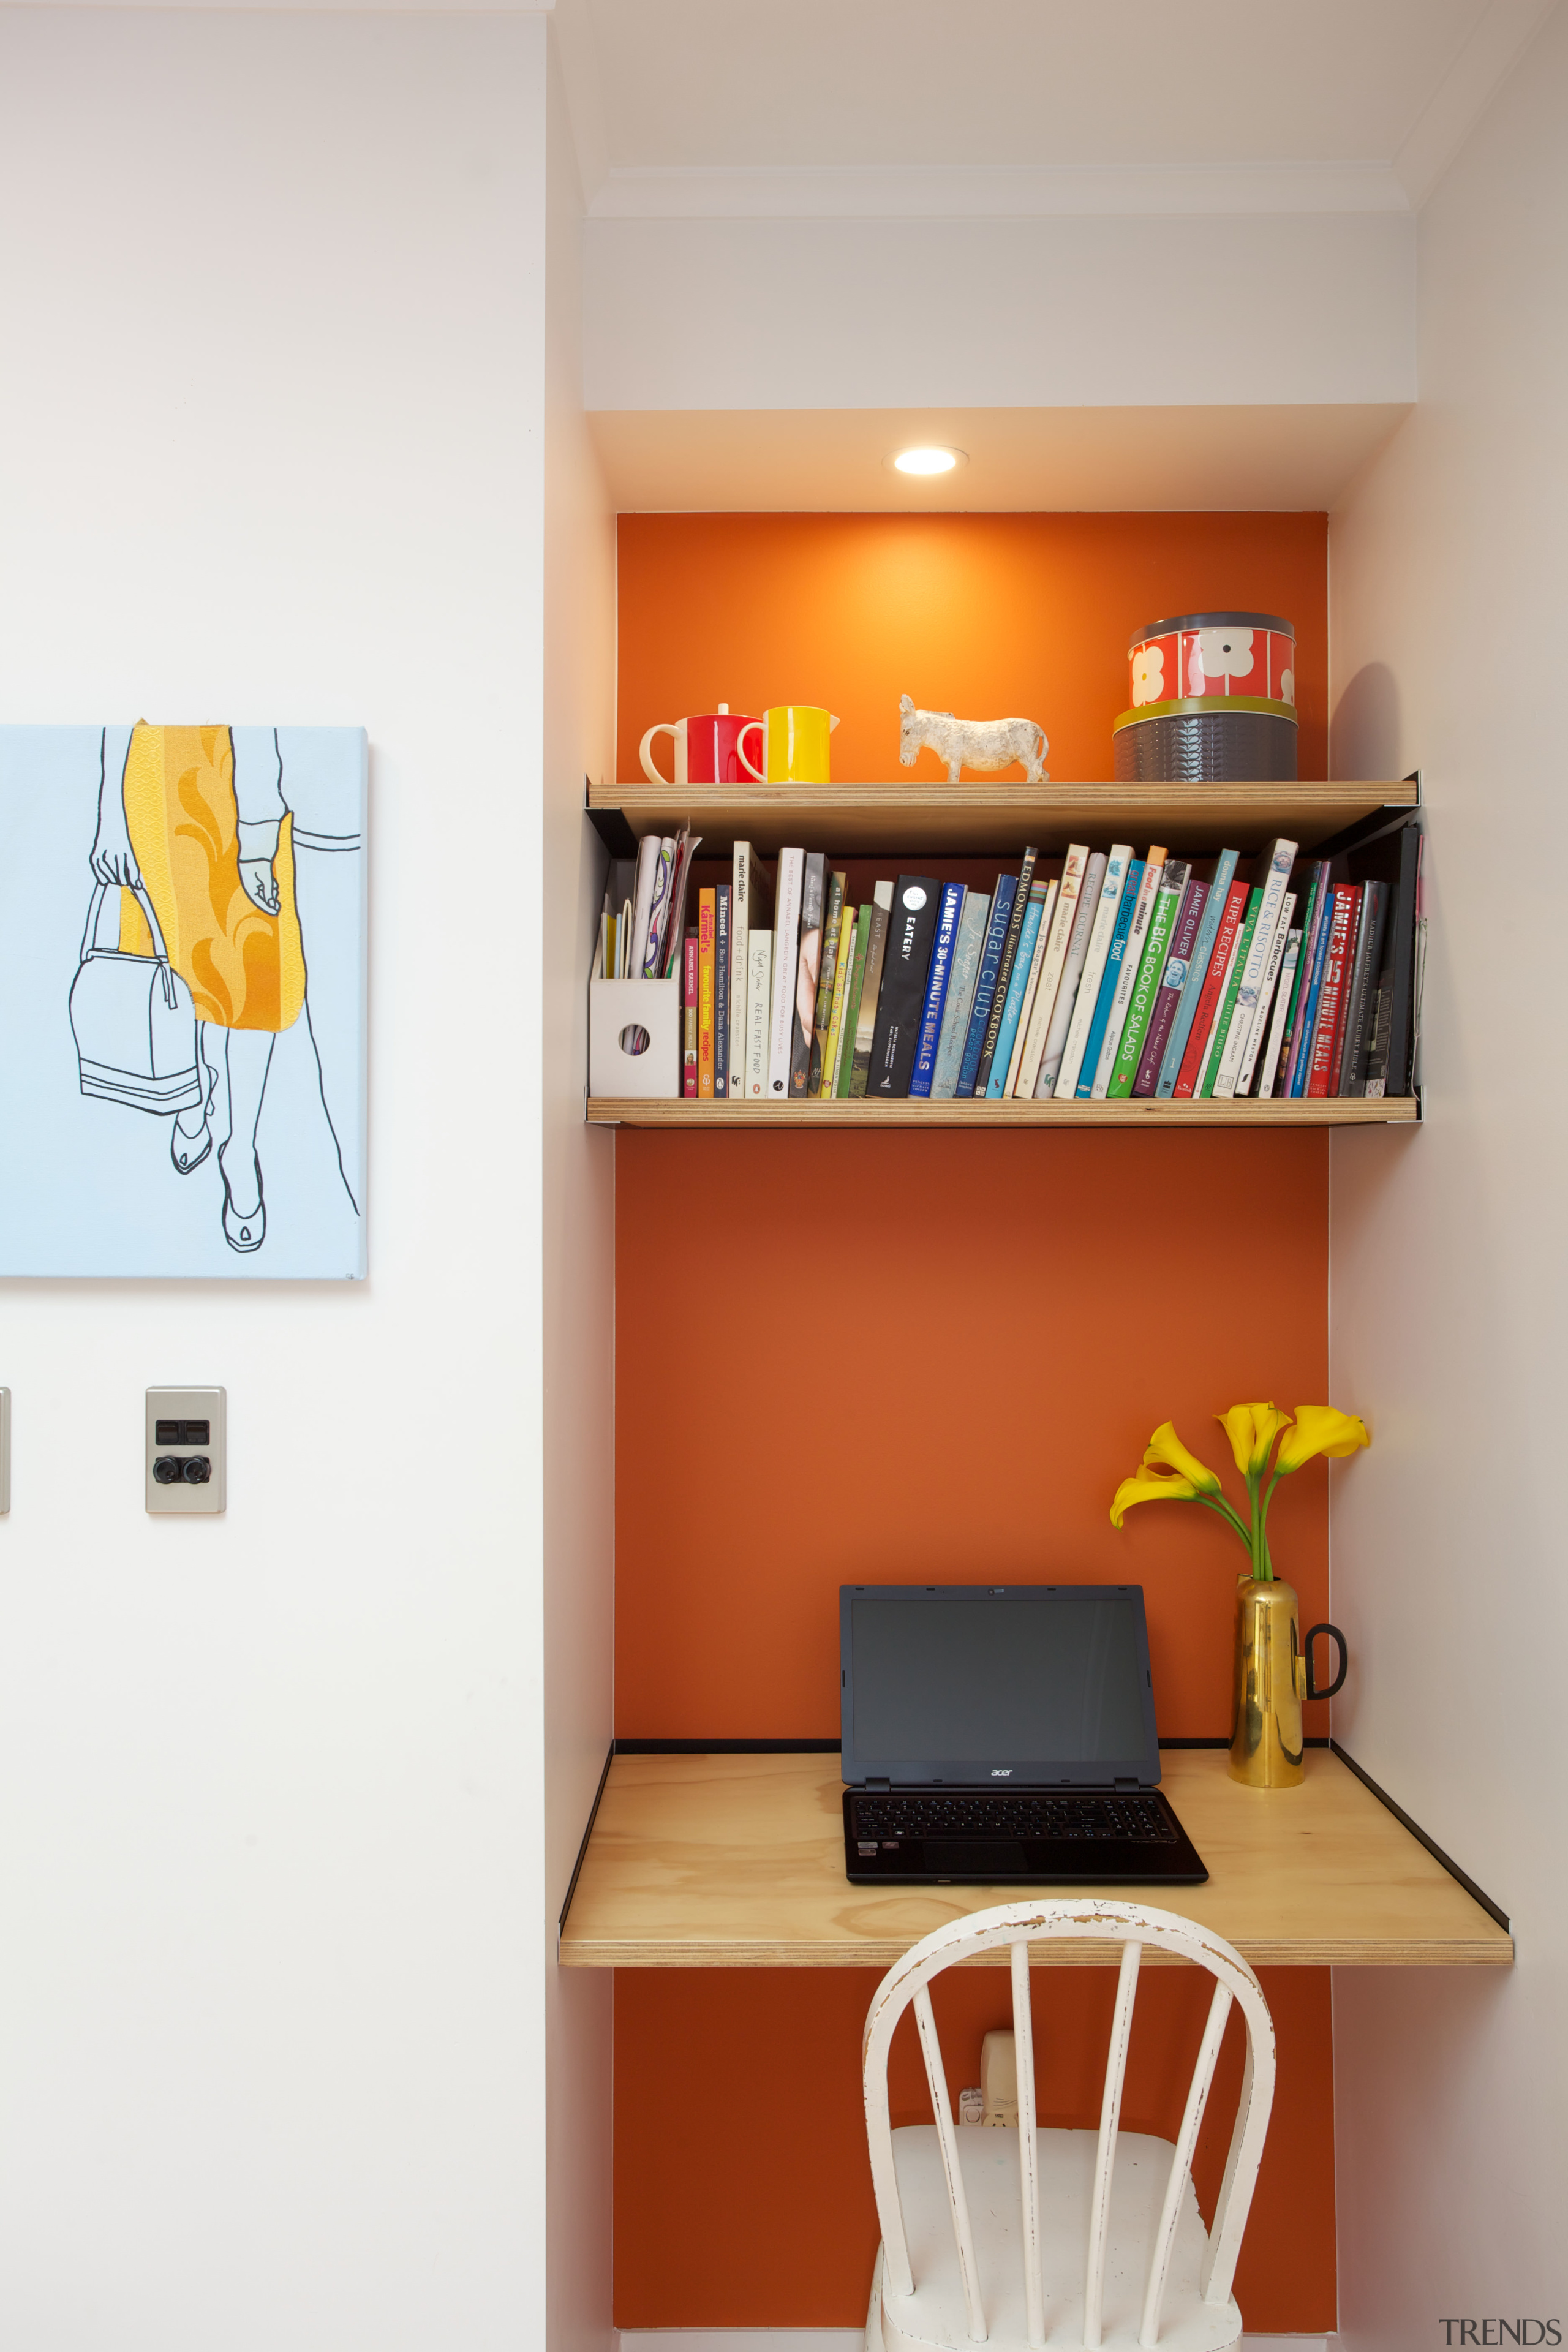 Interior designer Tomi Williams specified a black and bookcase, furniture, home, interior design, office, orange, room, shelf, shelving, table, yellow, gray